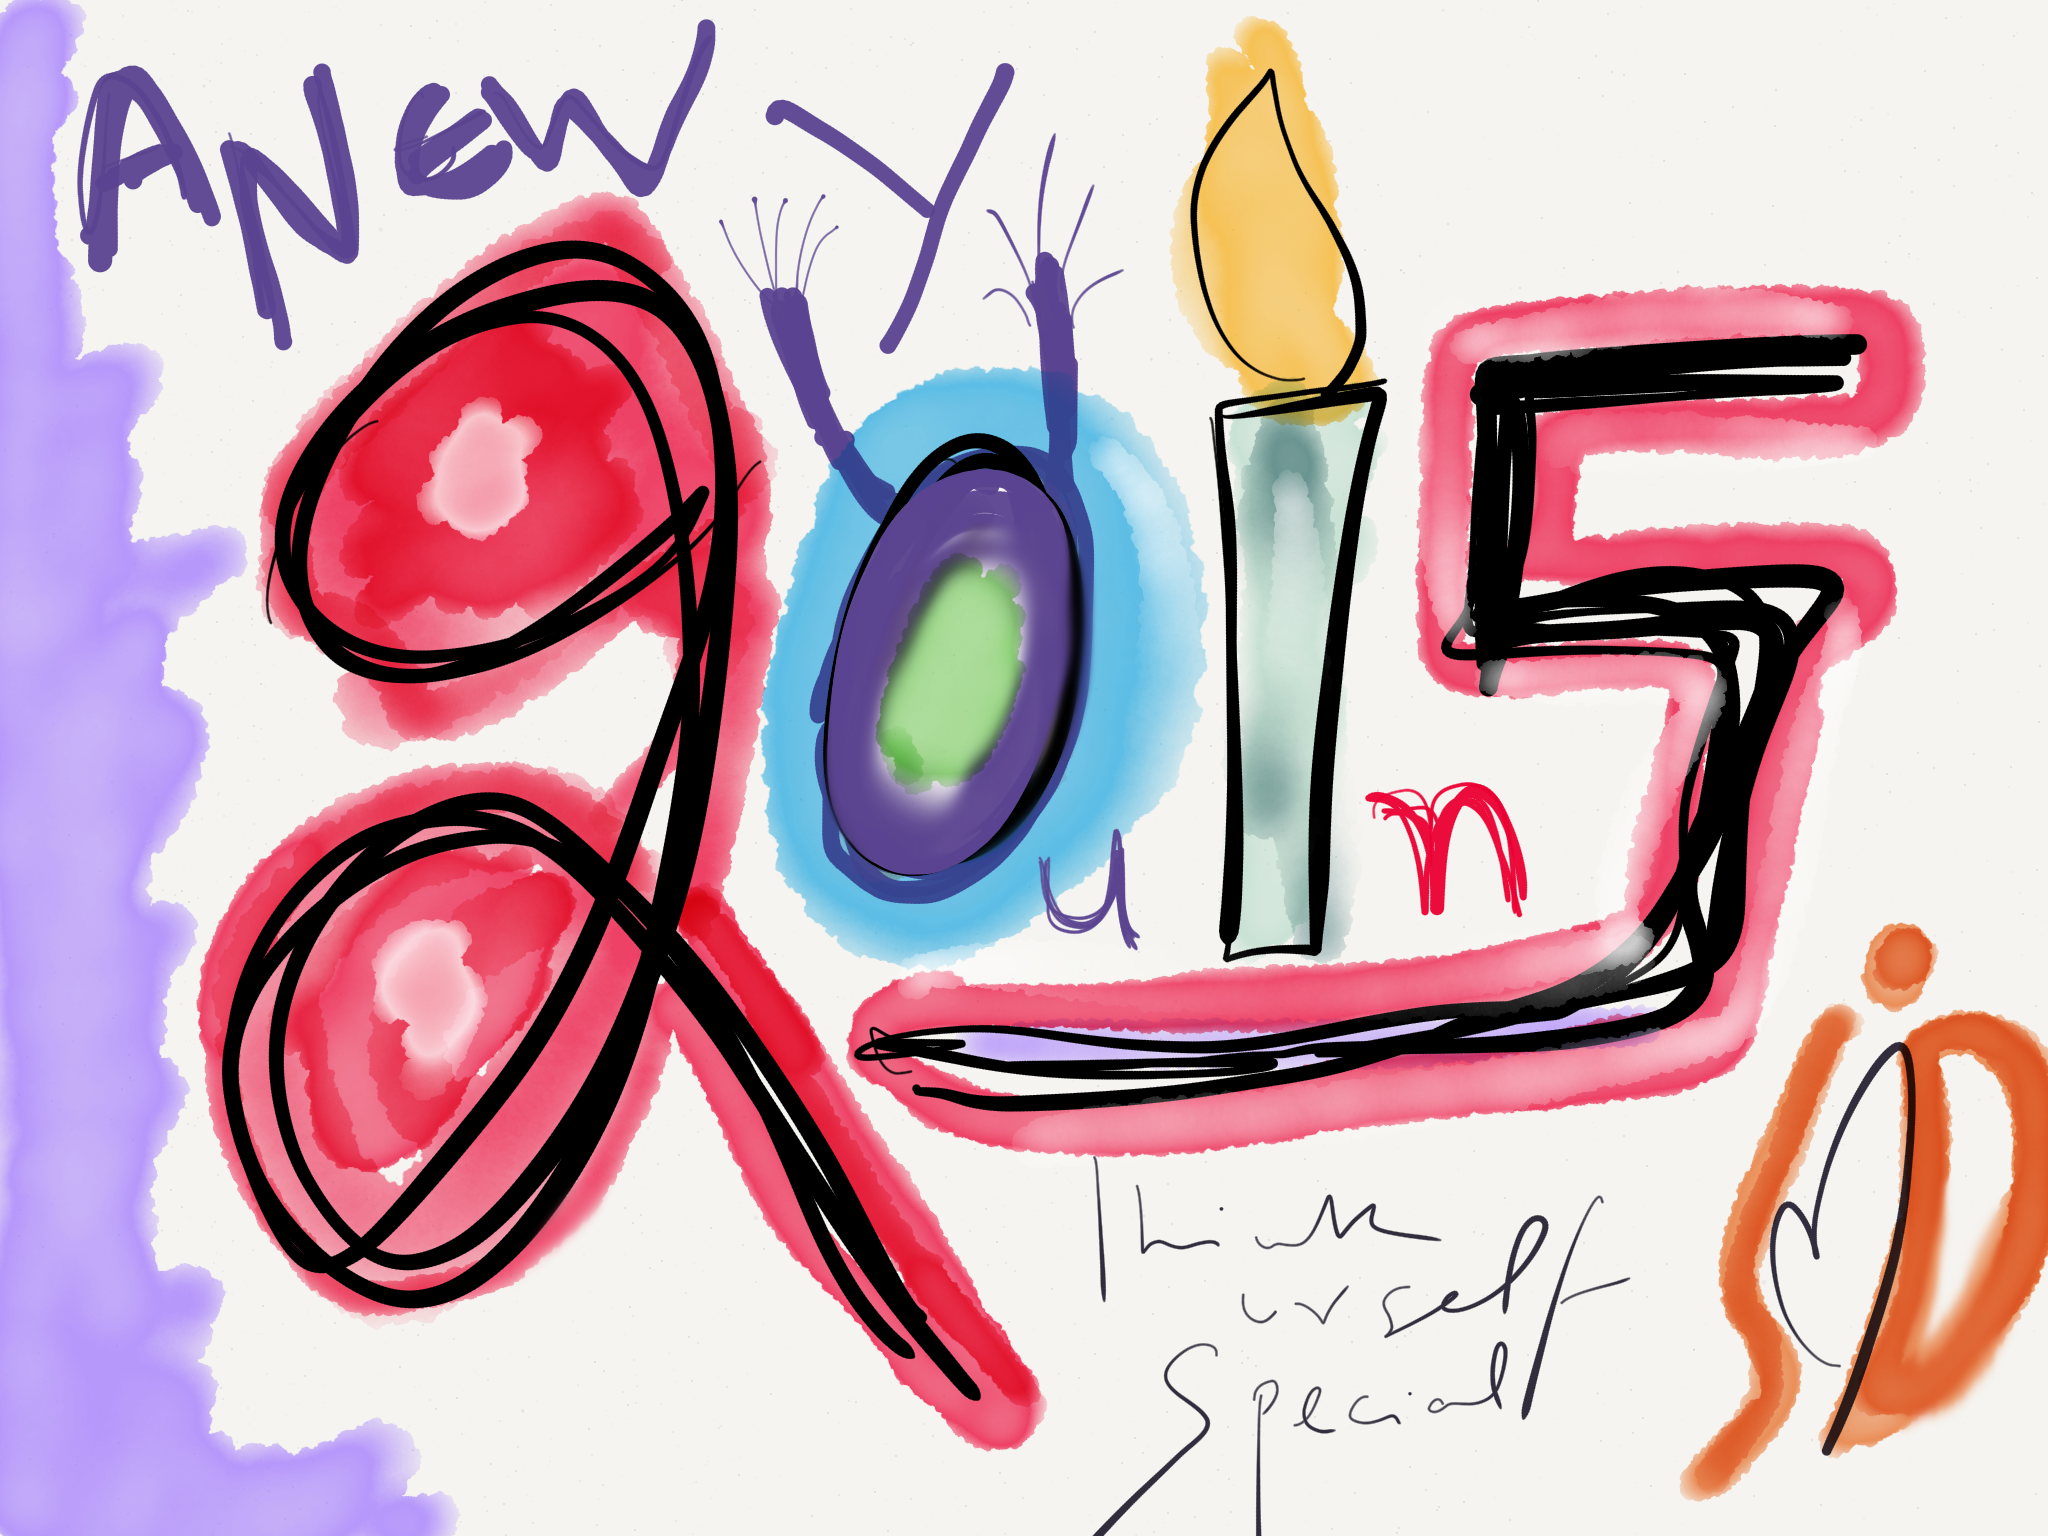 2015 started with school timescribble